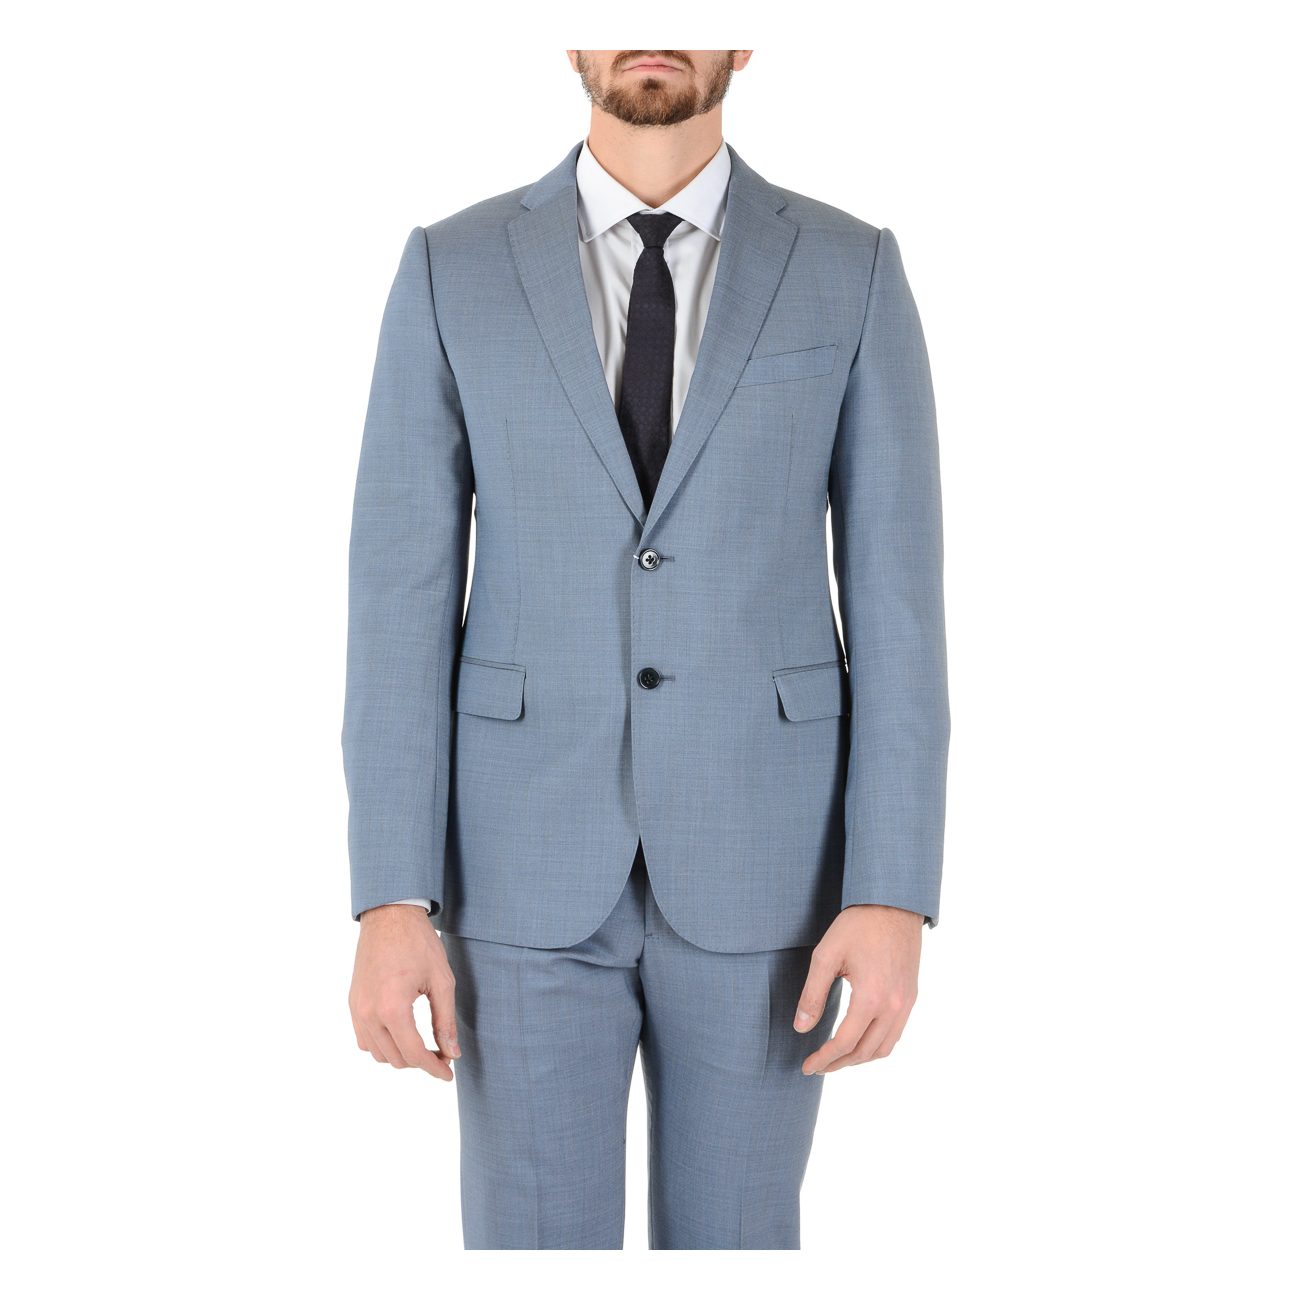 armani-collezioni-mens-suit-light-blue-2